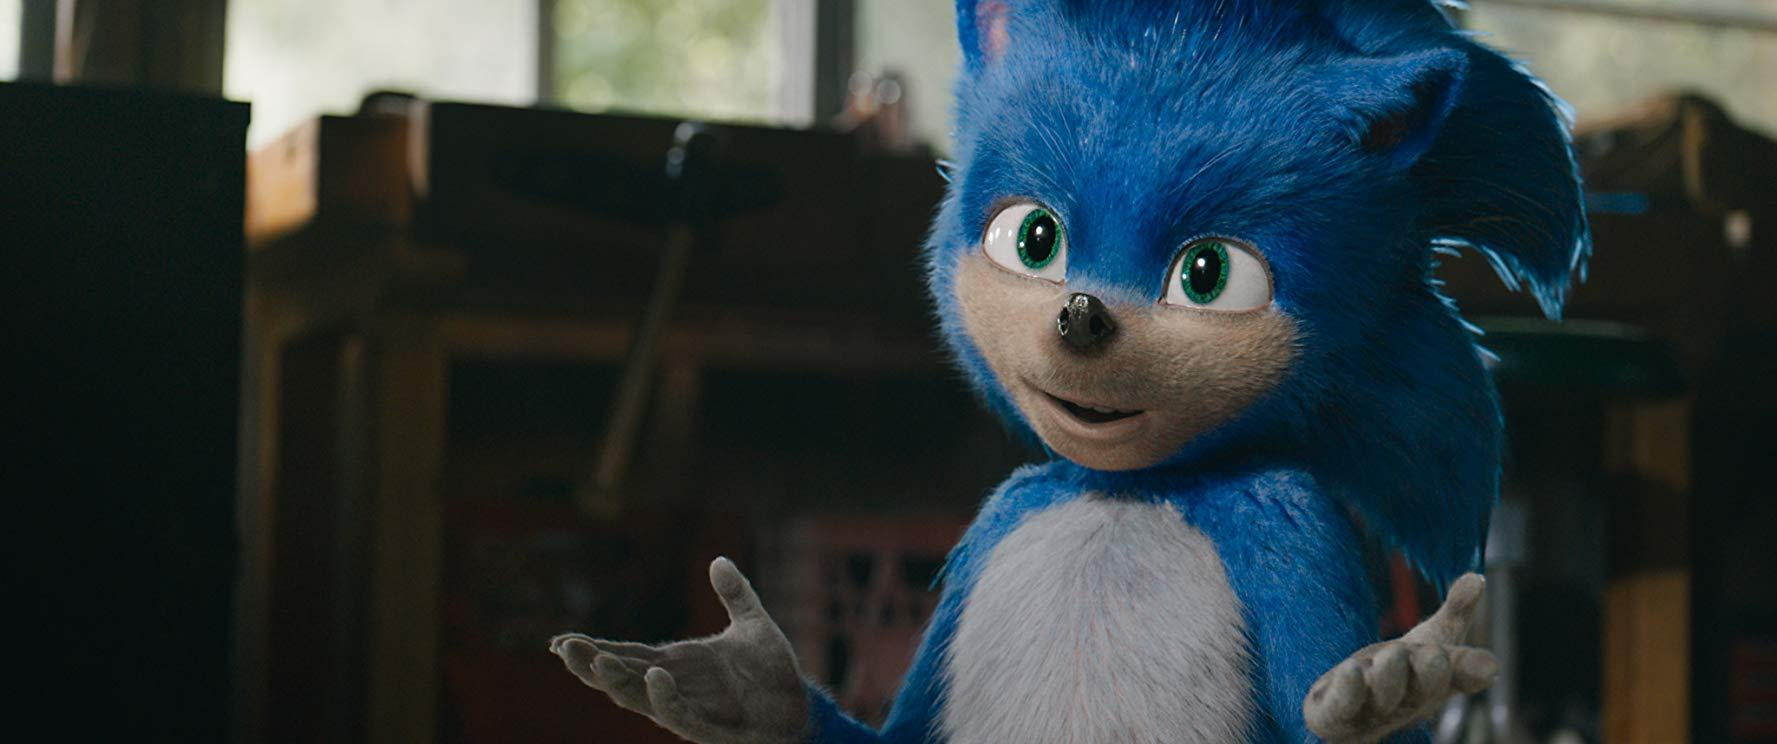 Full Movie 1080p Watch Sonic The Hedgehog 2020 Full Movie Online Streaming